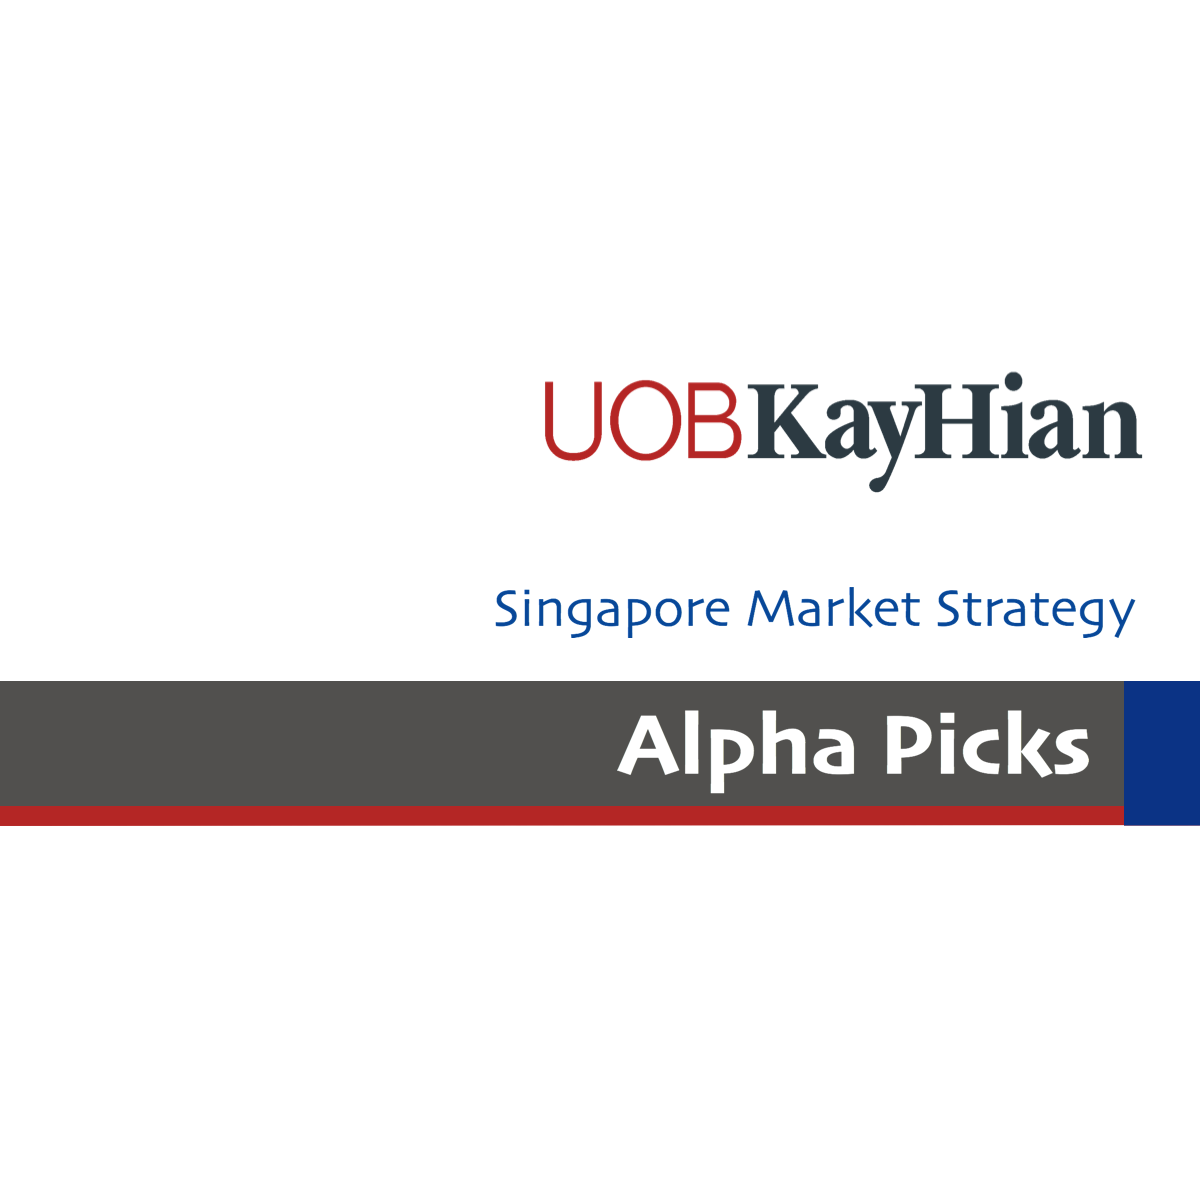 Singapore Stock Alpha Picks - UOB Kay Hian Research 2018-08-01: A Better July